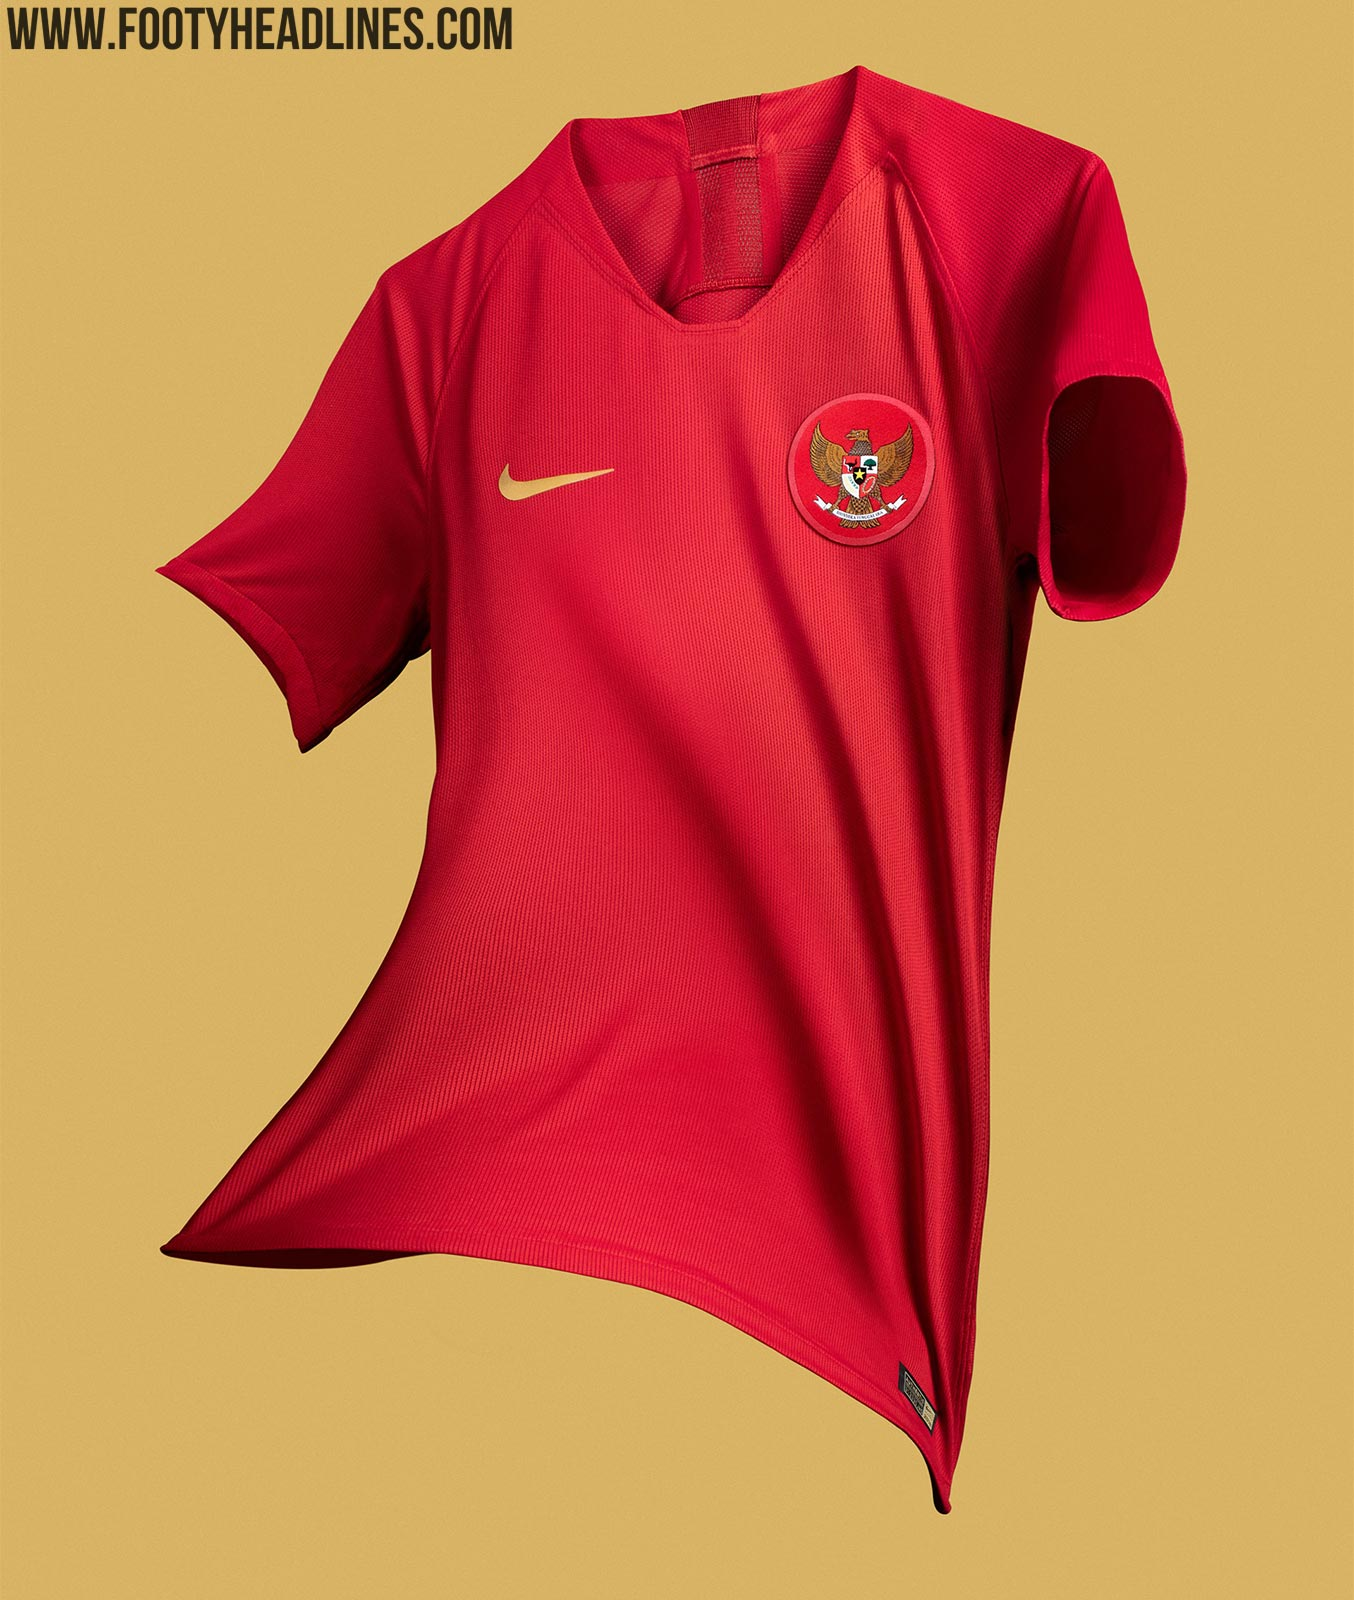 4a32ad453 Nike Indonesia 2018-19 Home   Away Kits Unveiled - Footy Headlines